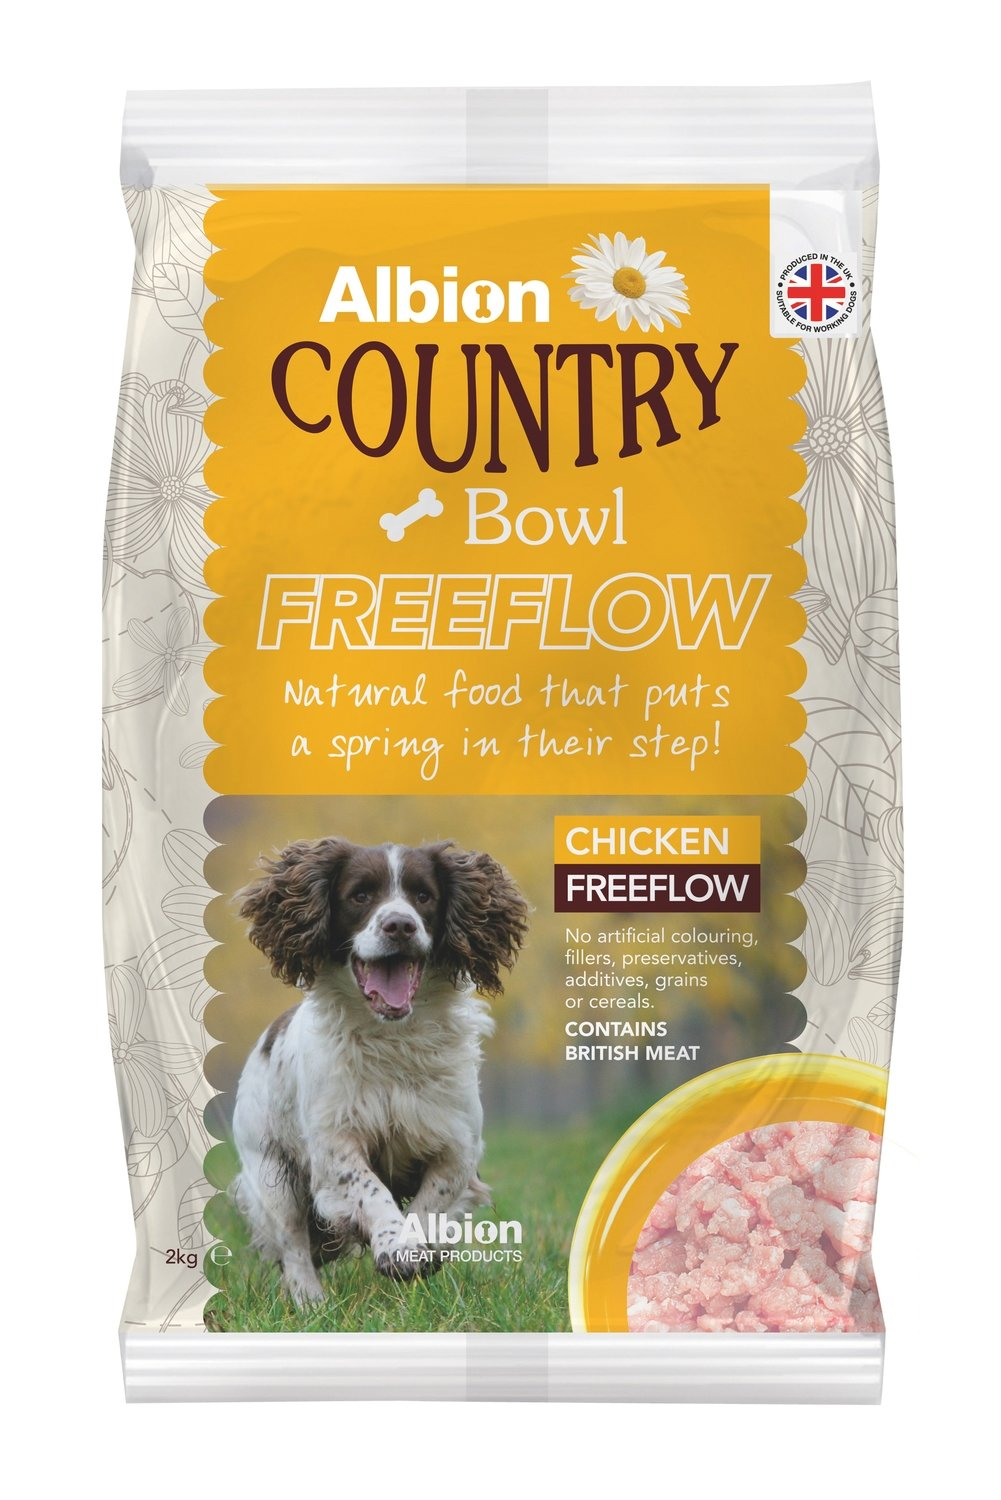 Albion Country Bowl Freeflow Chicken (2kg)